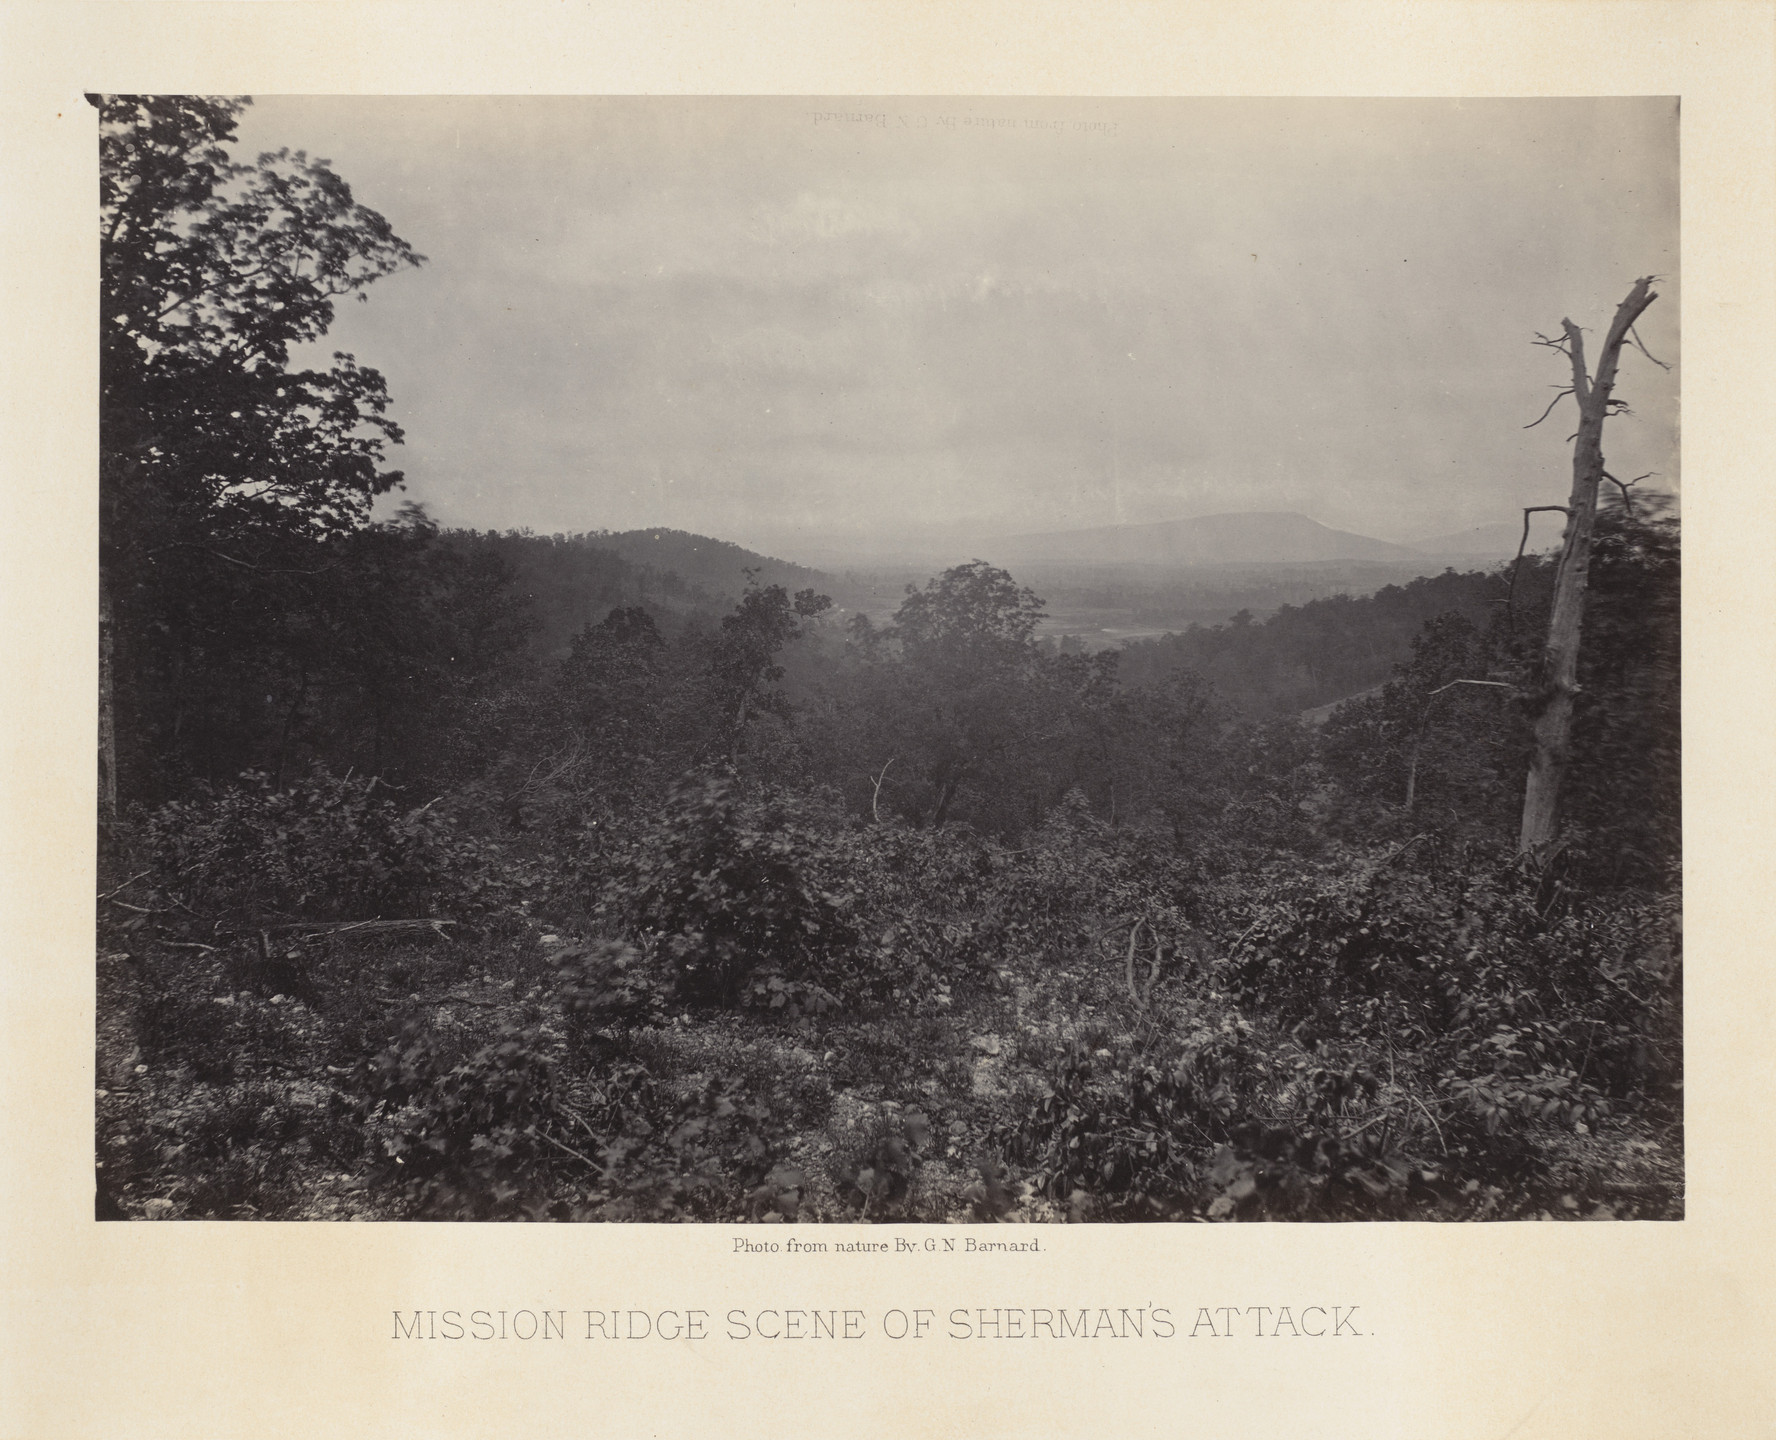 George Barnard. Mission Ridge, Scene of Sherman's Attack from the album Photographic Views of Sherman's Campaign. 1864-65